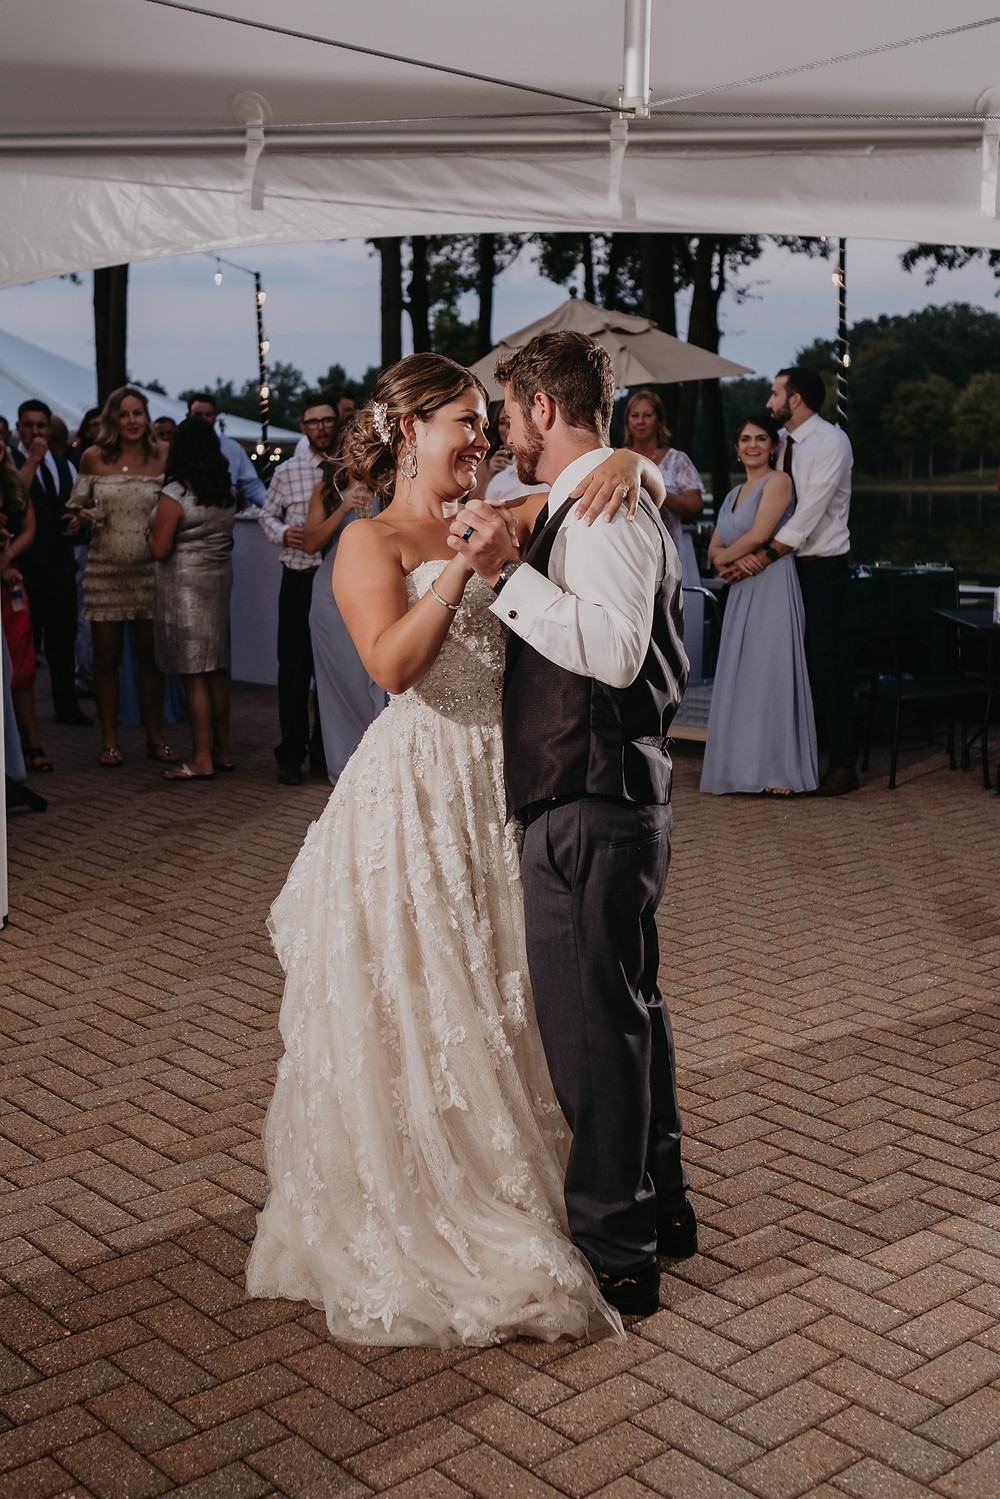 Bride and groom dancing at outdoor wedding in Metro Detroit. Photographed by Nicole Leanne Photography.